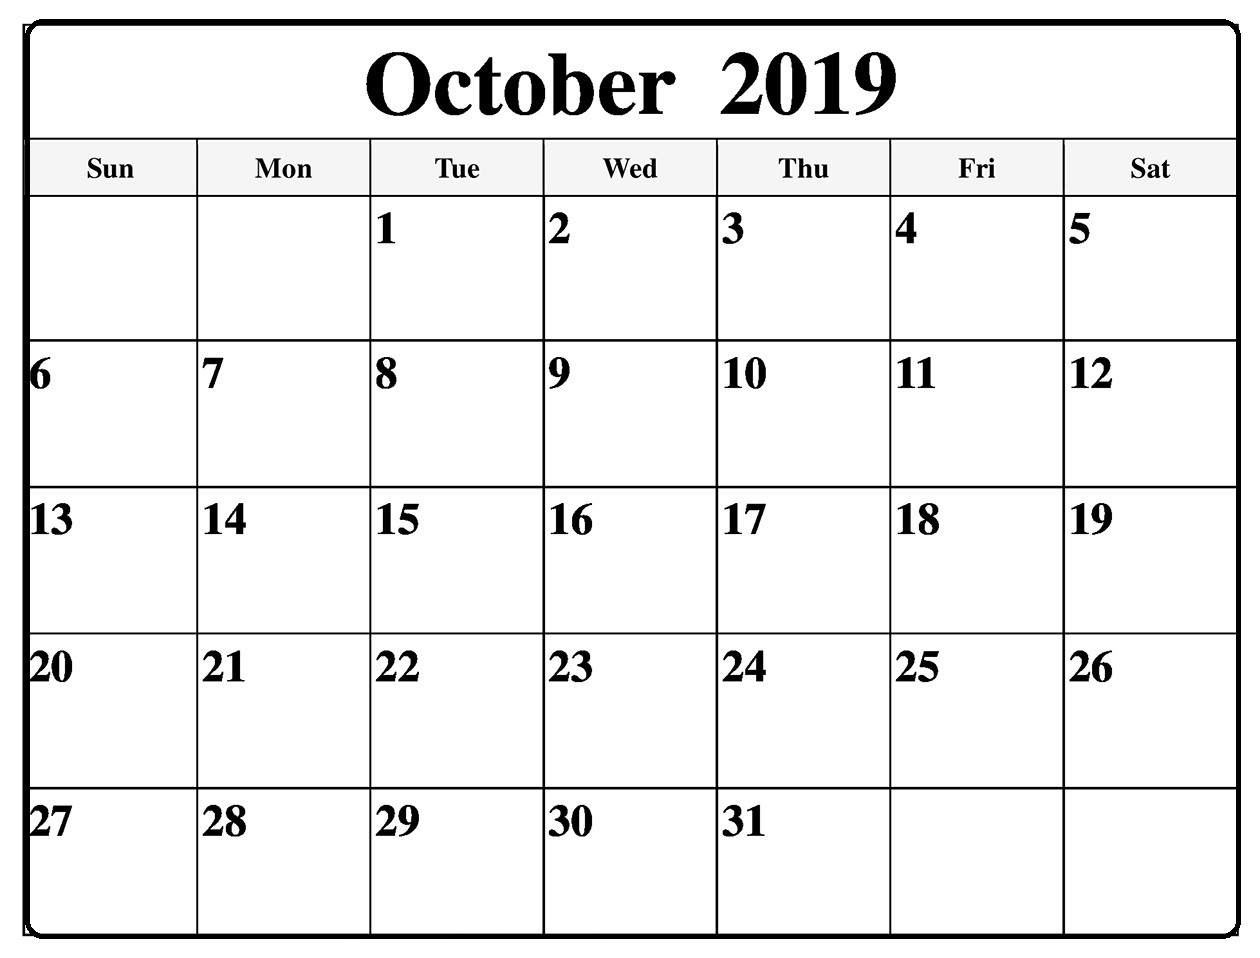 October 2019 Calendar Printable Word Template - Latest With Where To Find Google Printable Amendable Calander